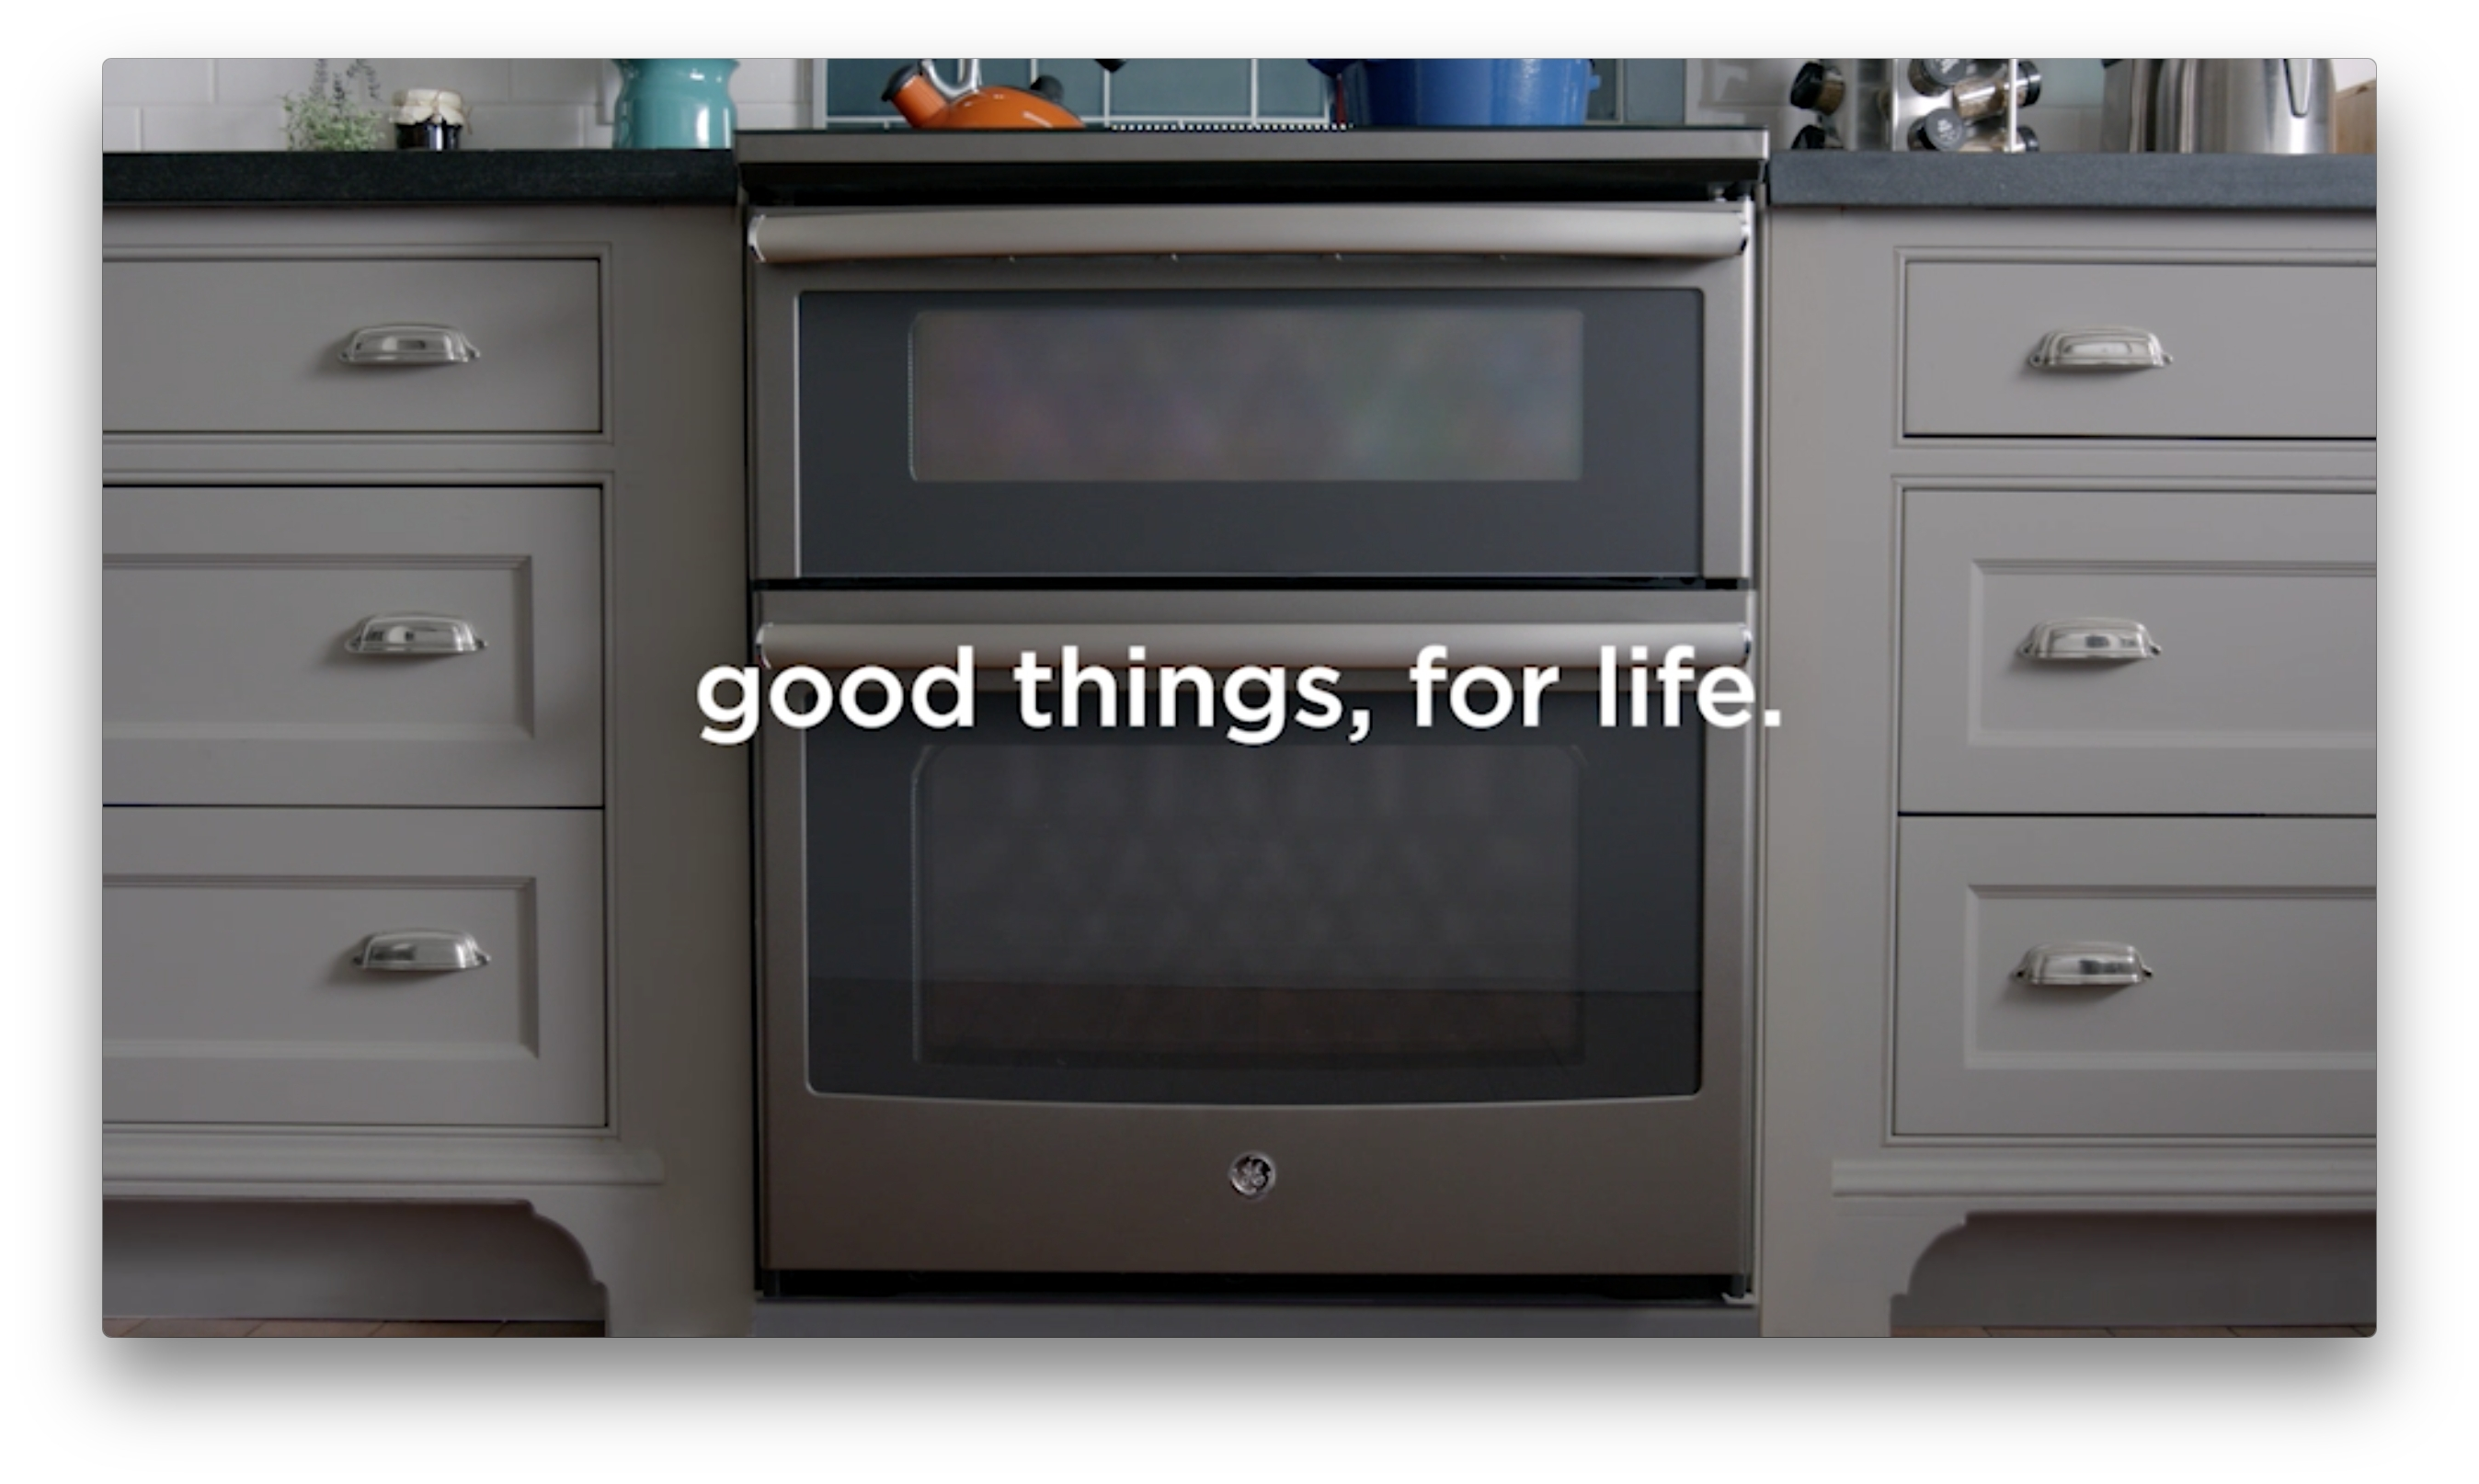 GE Appliances Launches New Tagline, New Campaign | Business Wire